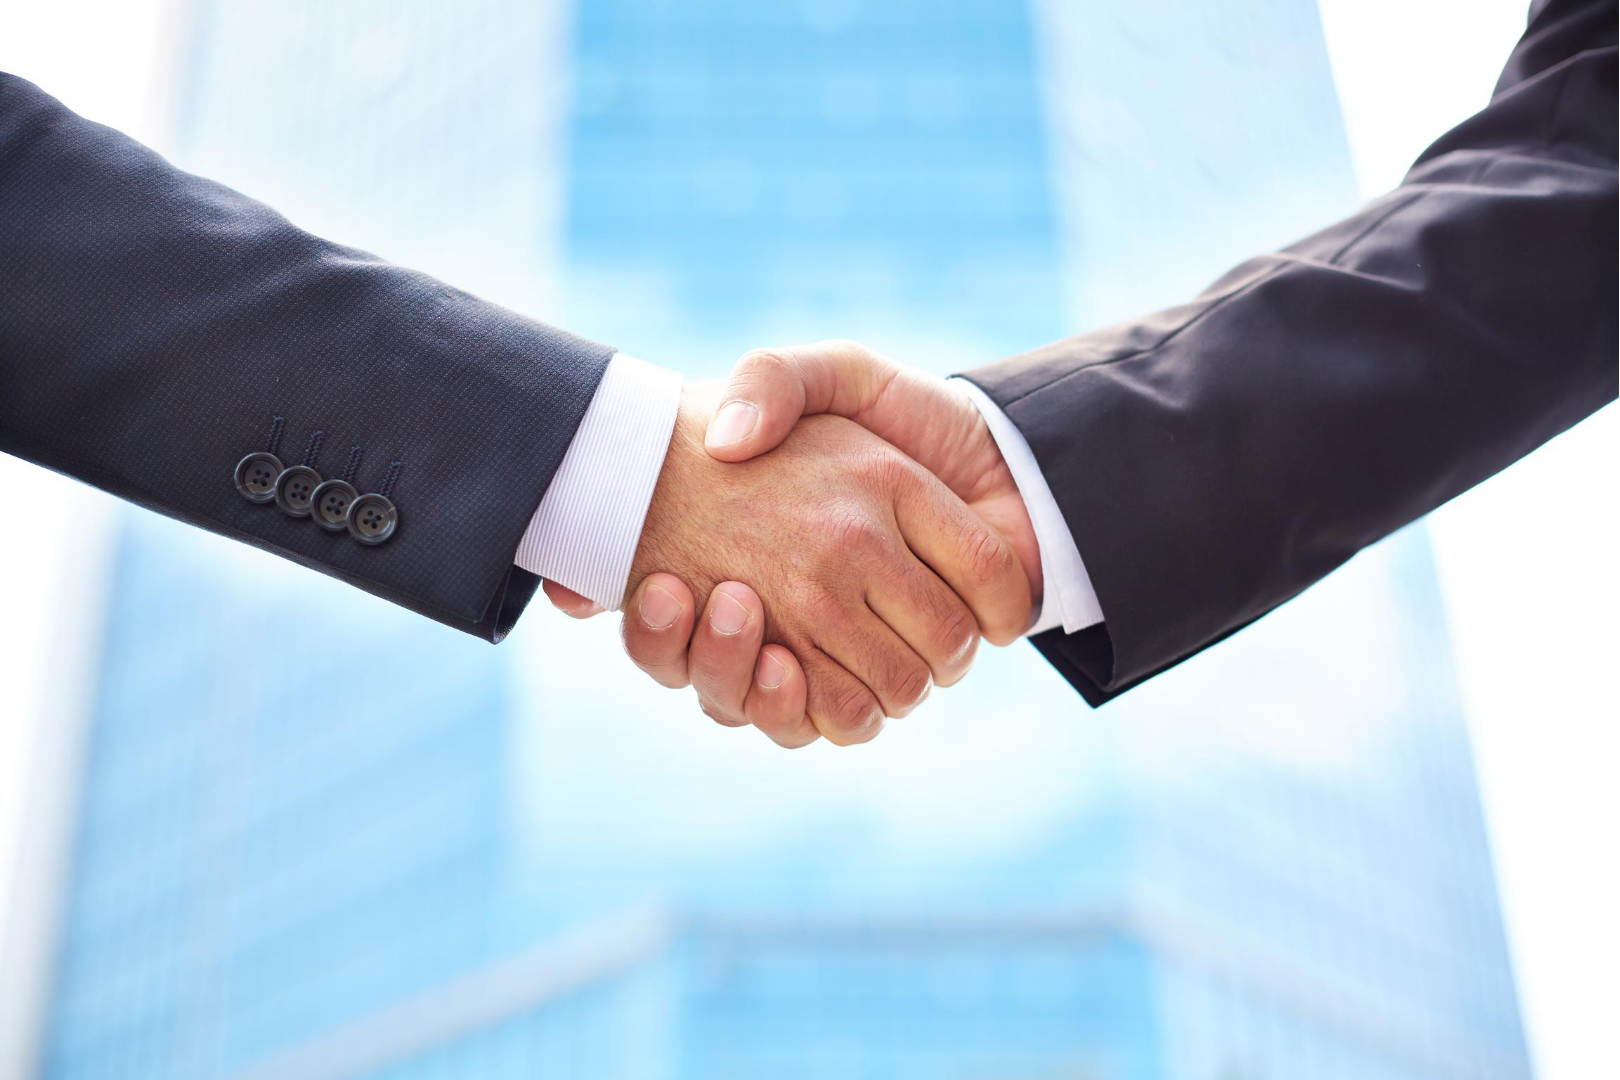 6 Partnerships With Other Companies